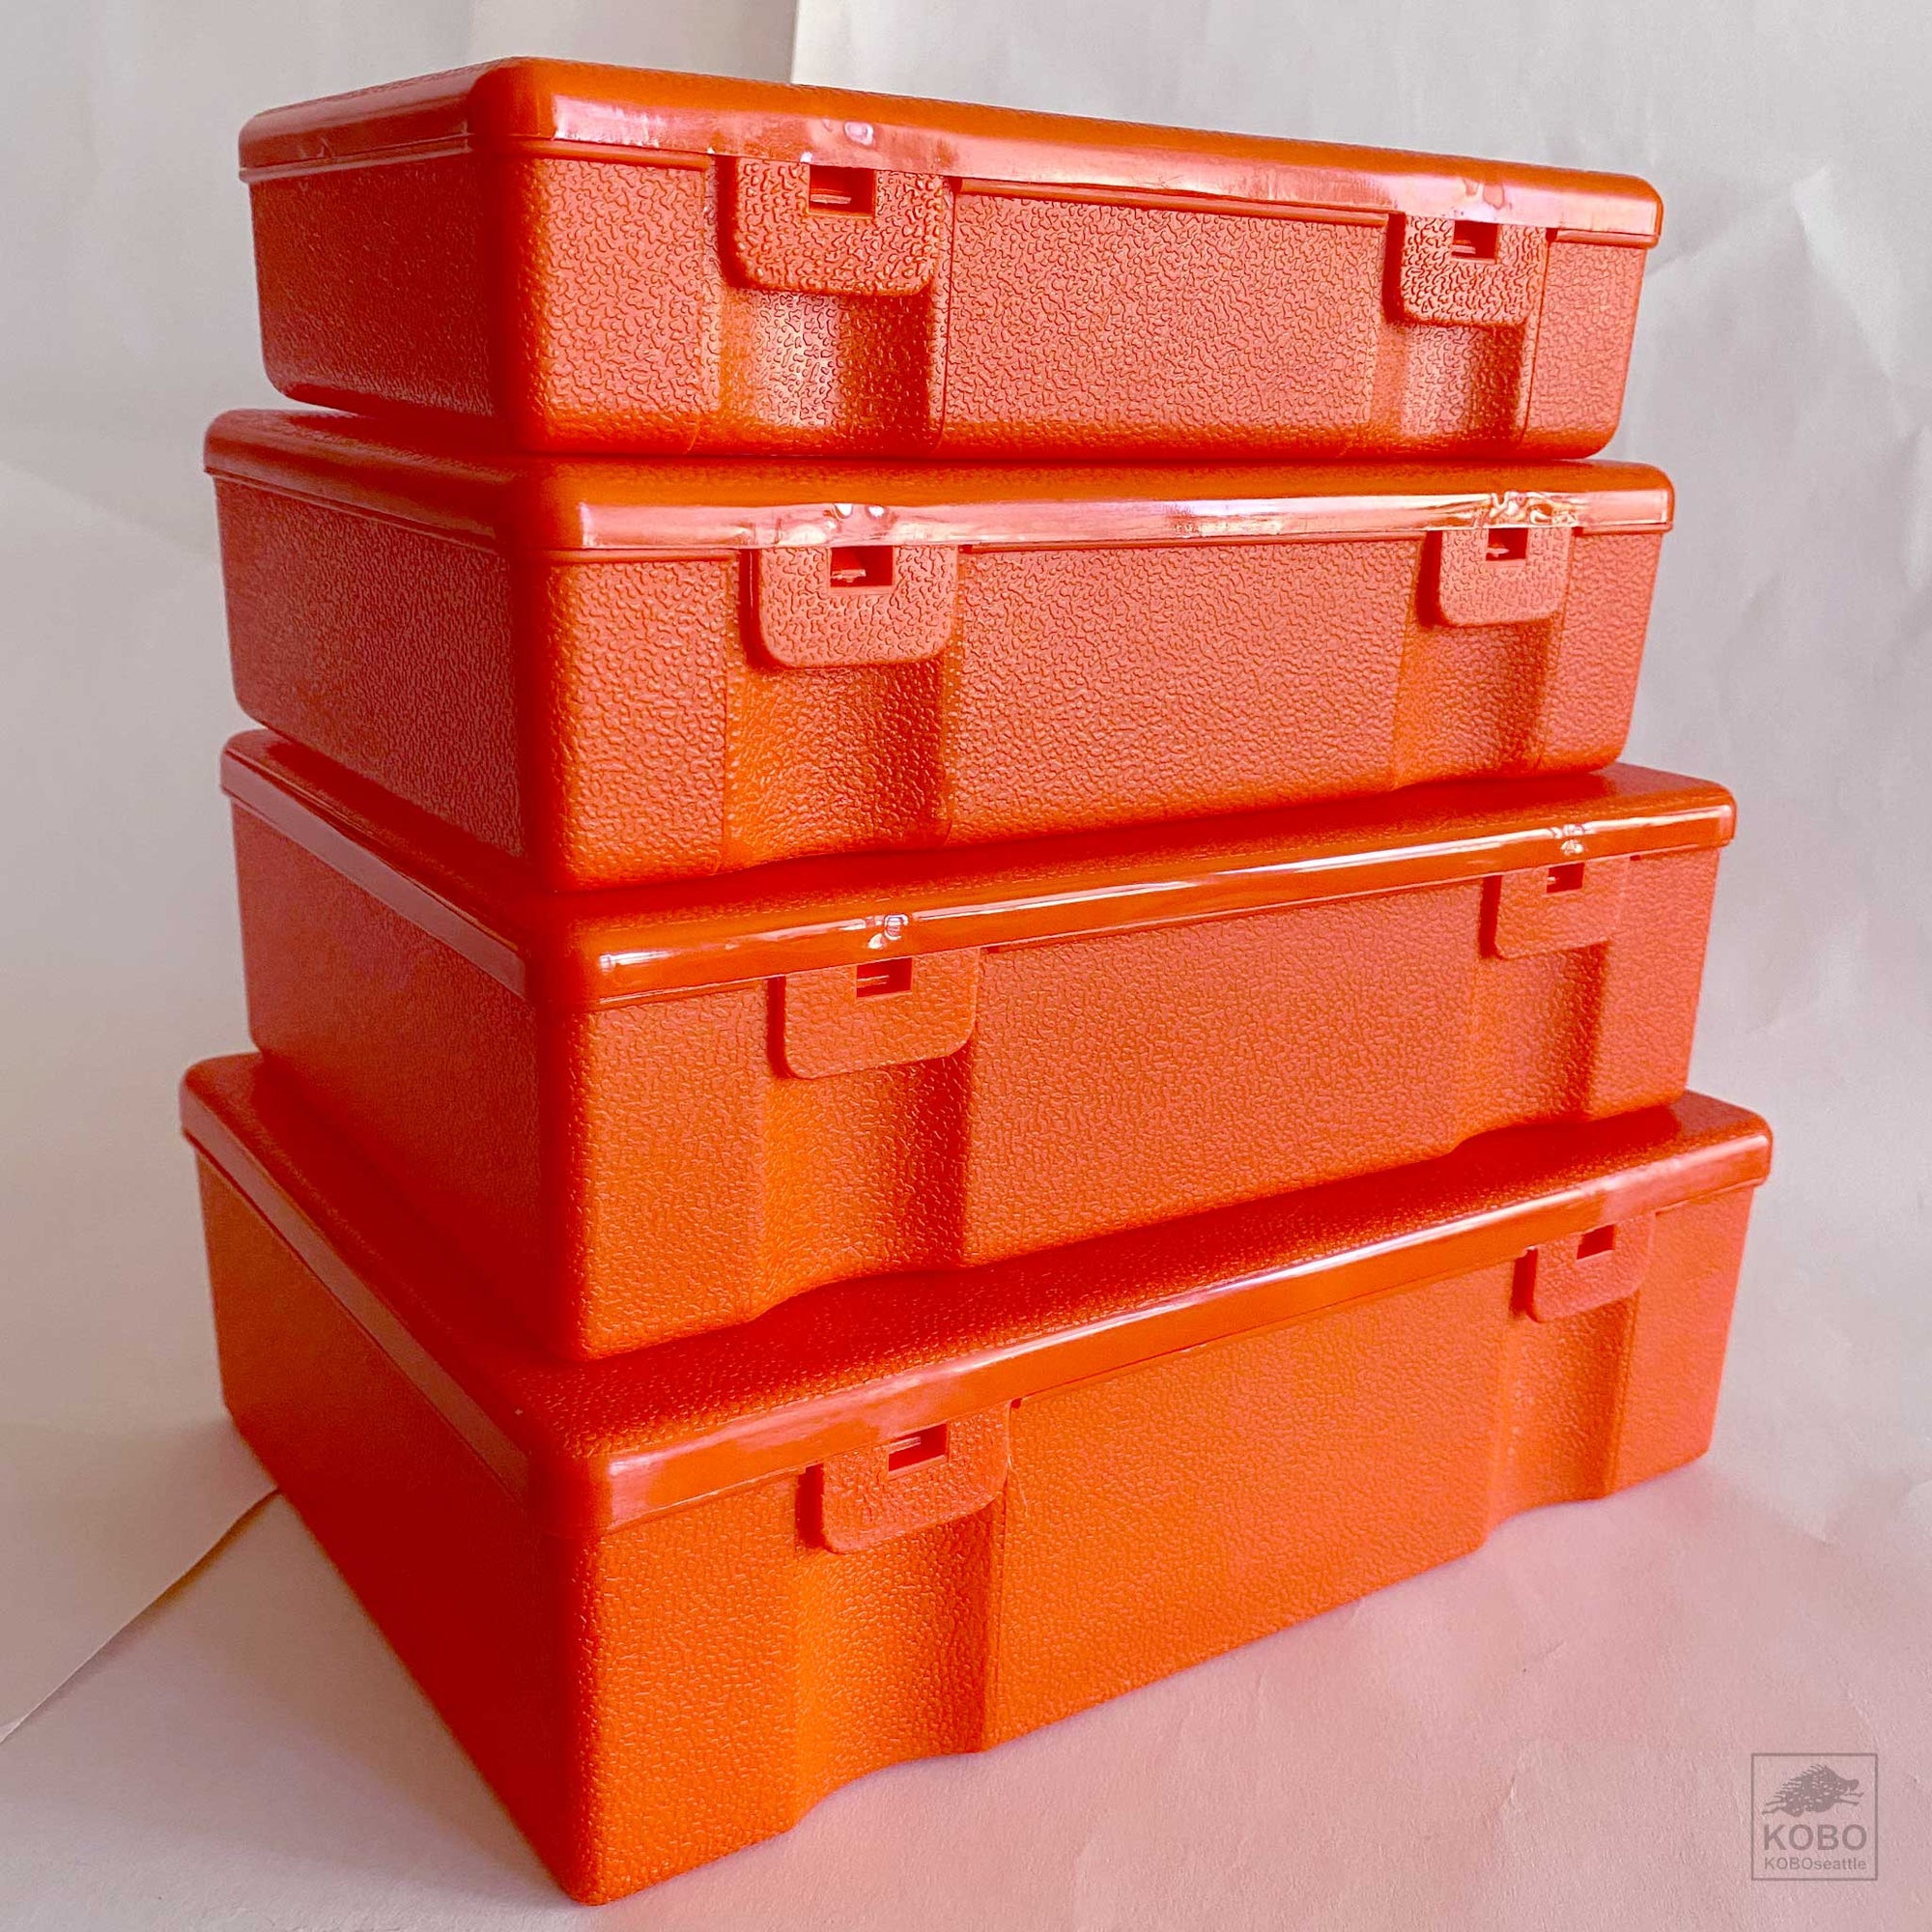 Plastic Orange Storage Containers - set of four